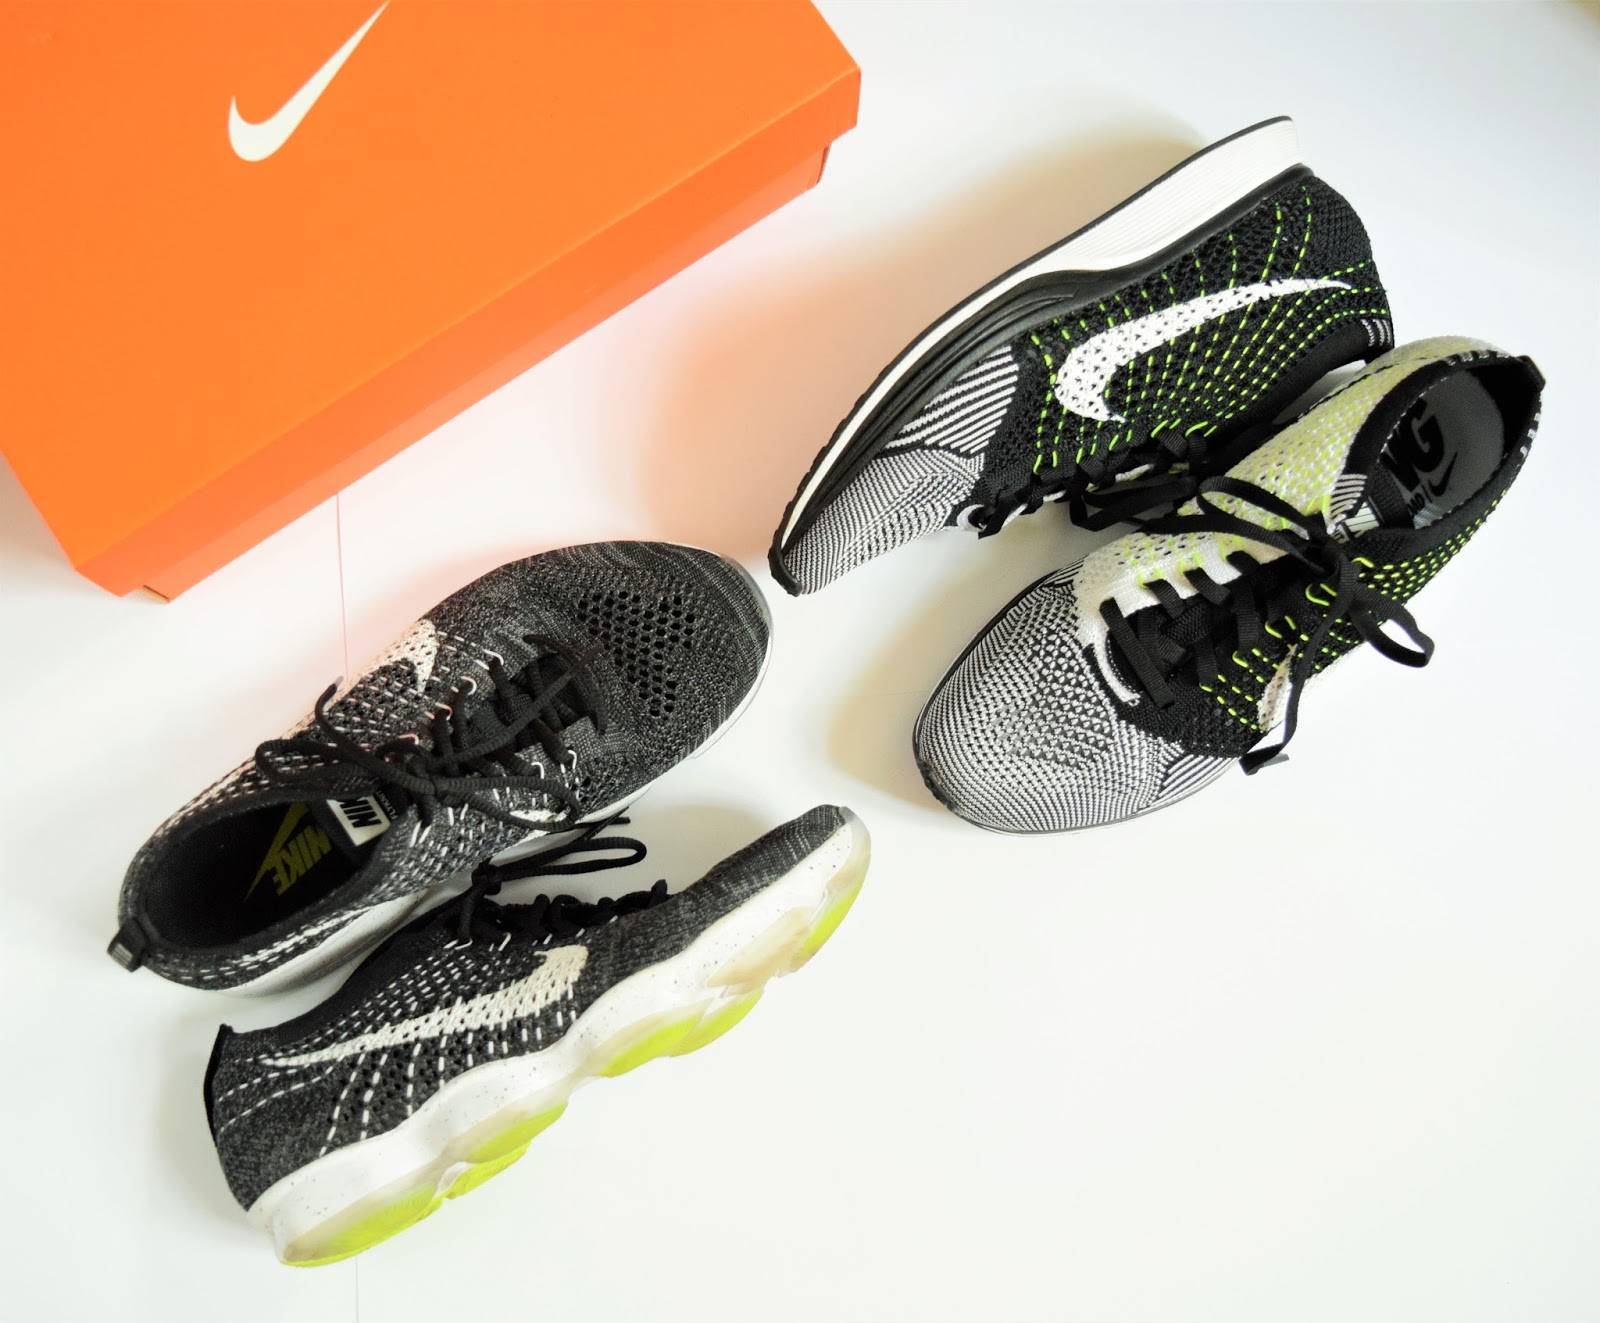 b96dc0b75 I bought the Nike Flyknit Zoom Agility last year and the Nike Flyknit Racer  just two months ago. I've been searching for the Nike Flyknit Racer in the  ...